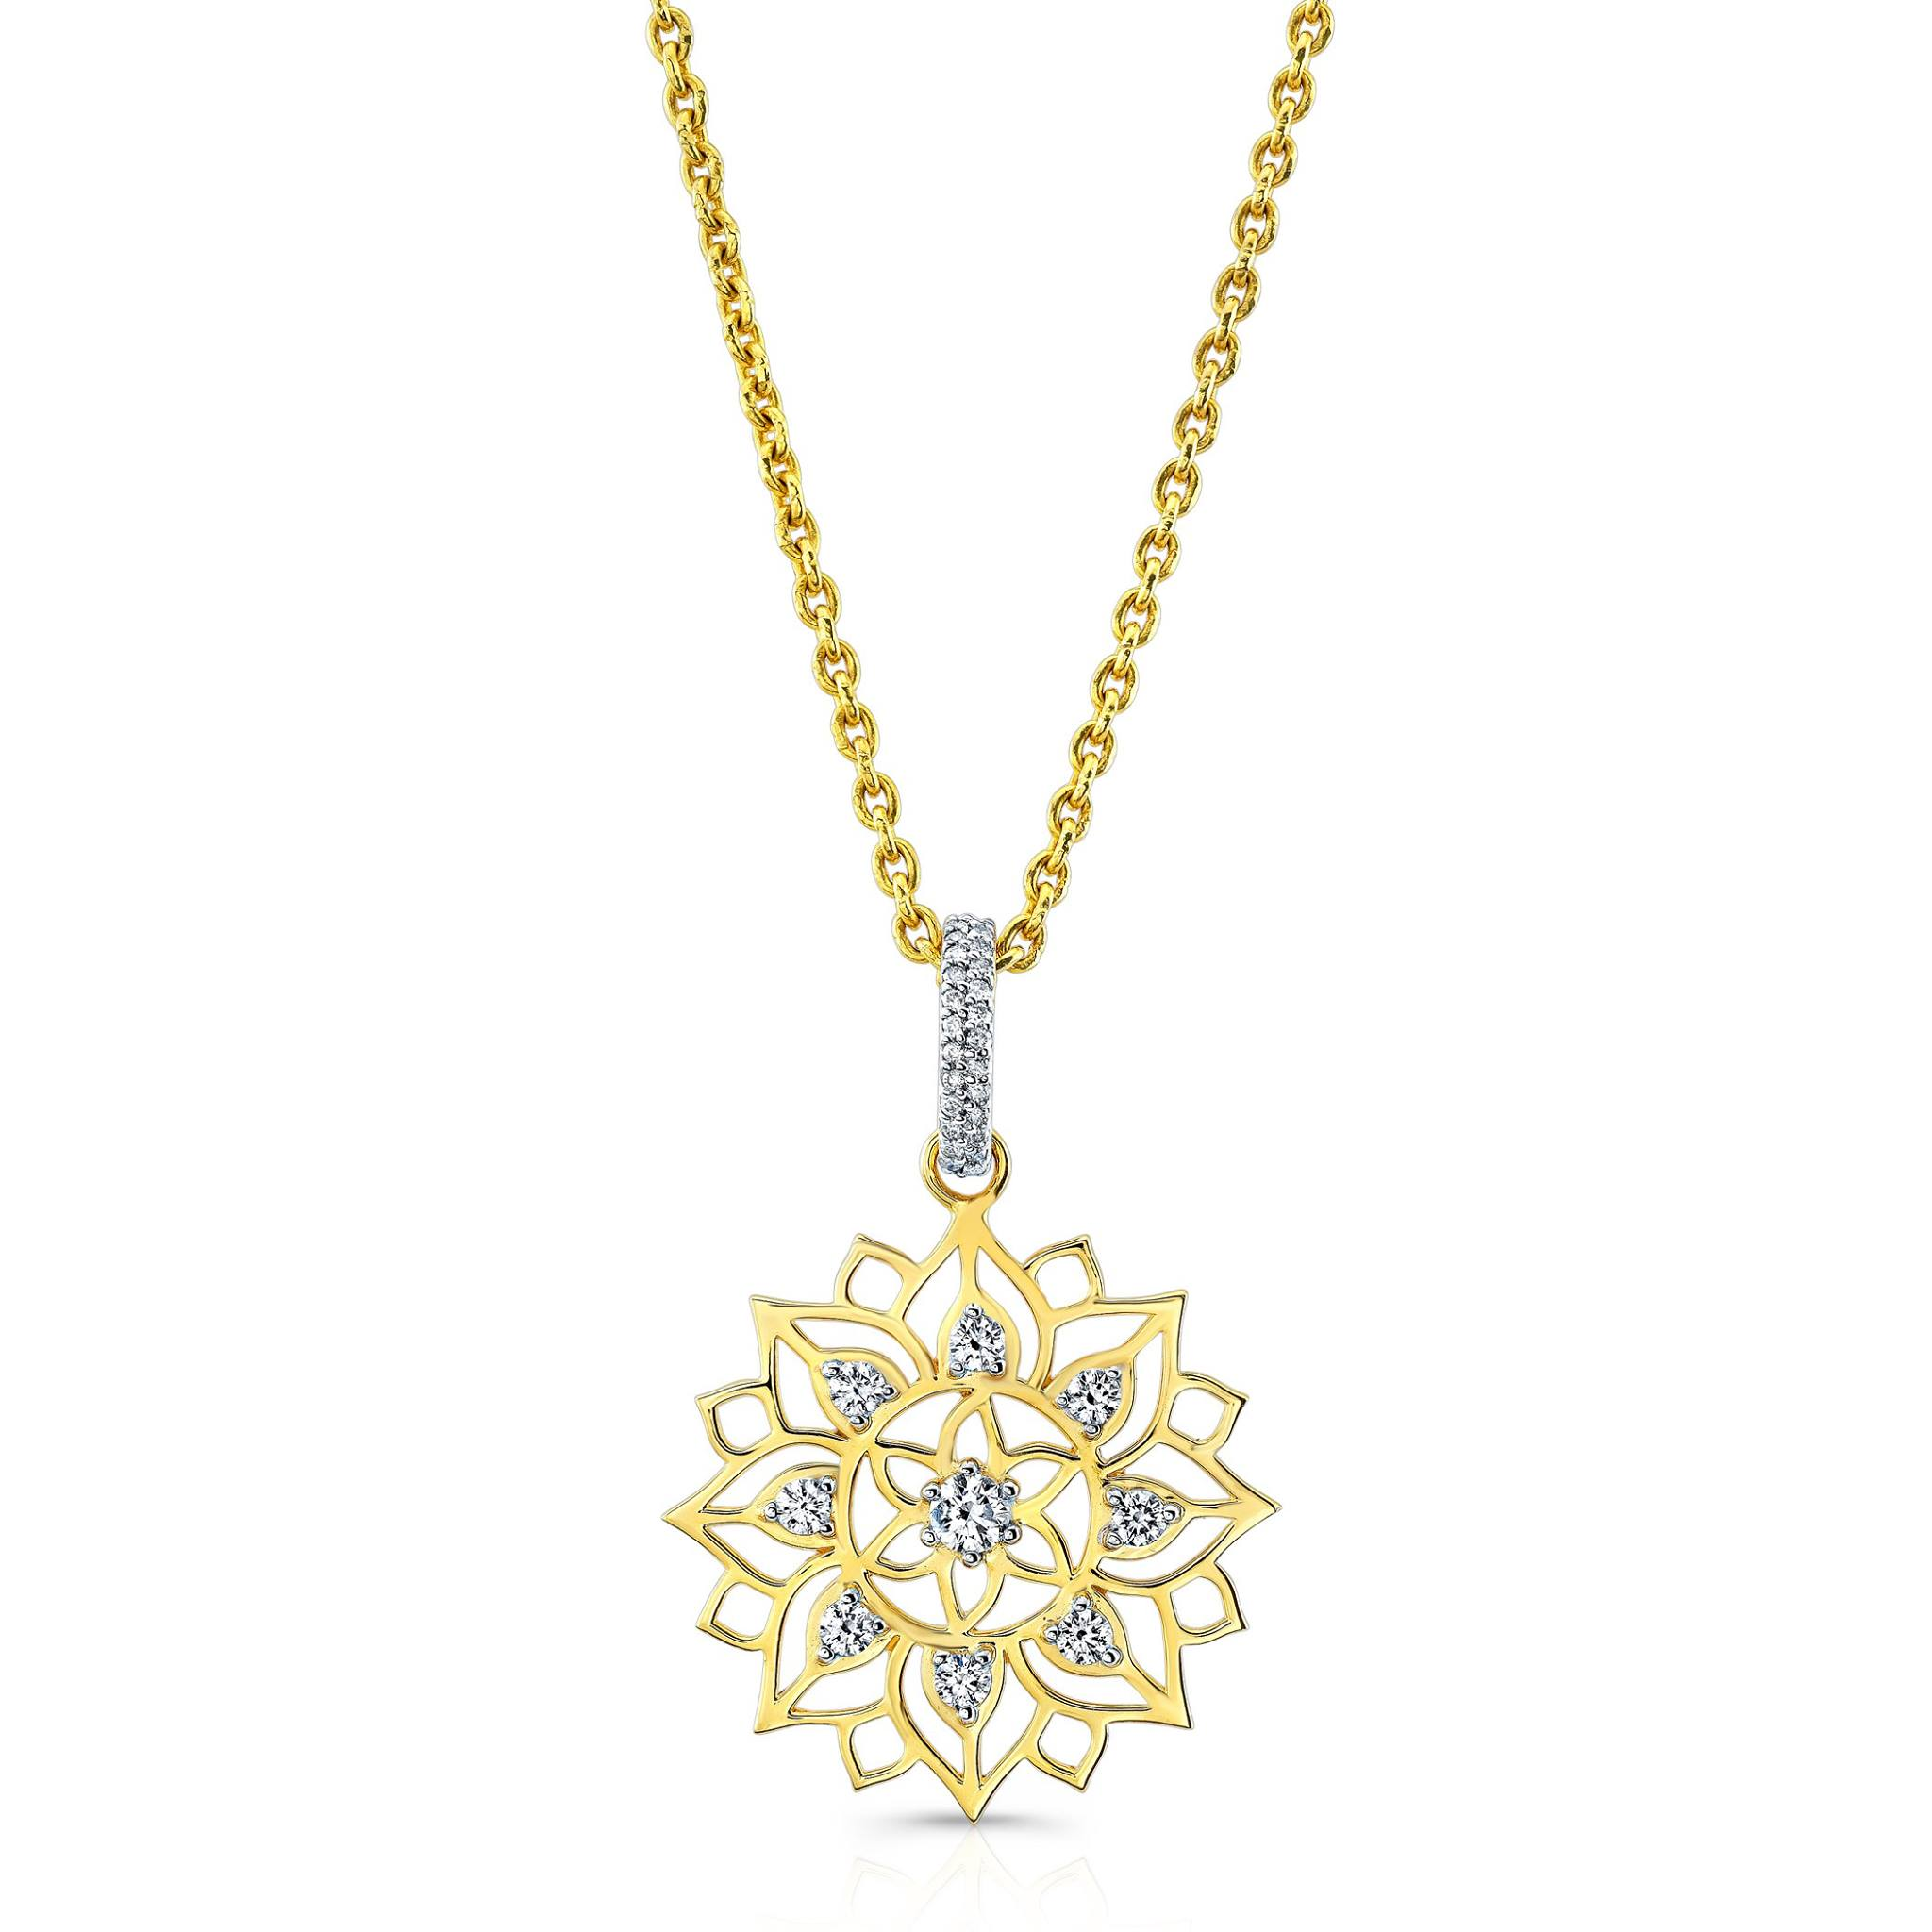 Mandala Dream Catcher pendant and chain in 22k Yellow Gold with Diamonds.